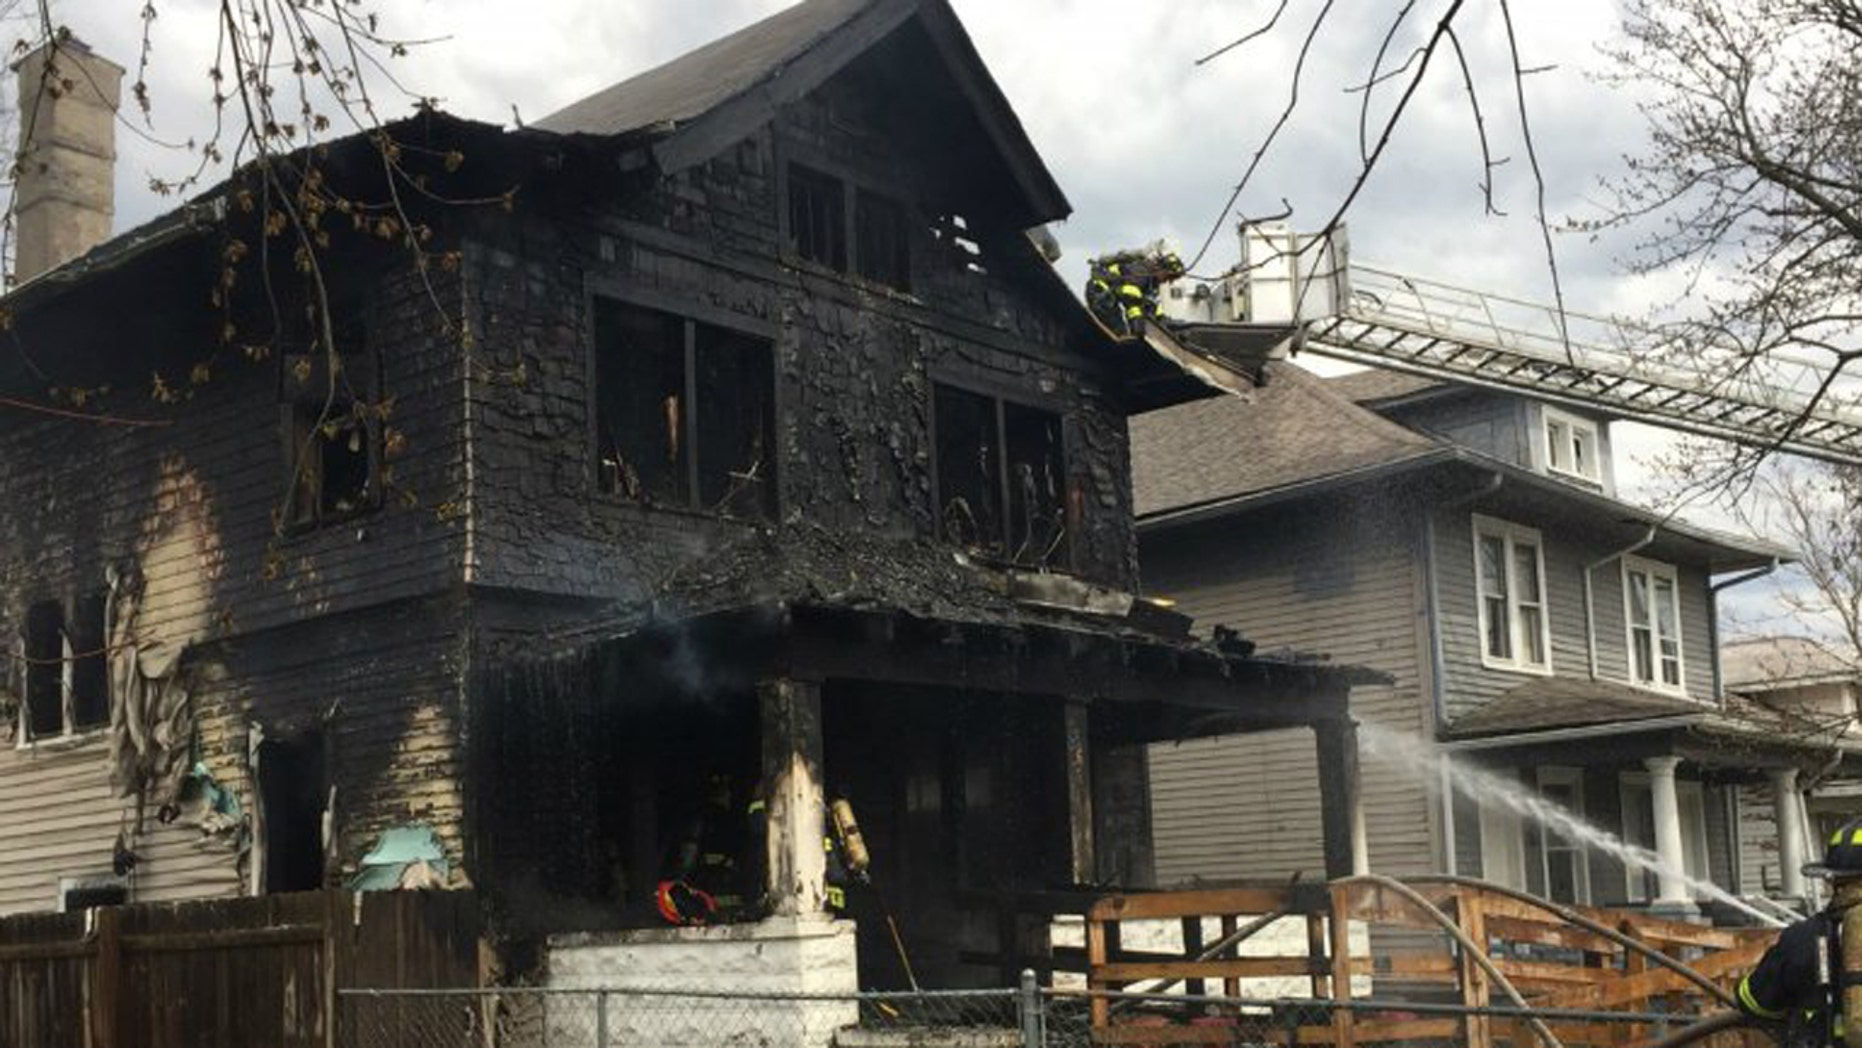 An Indianapolis family saw their home go up in flames and barely escaped with their lives.